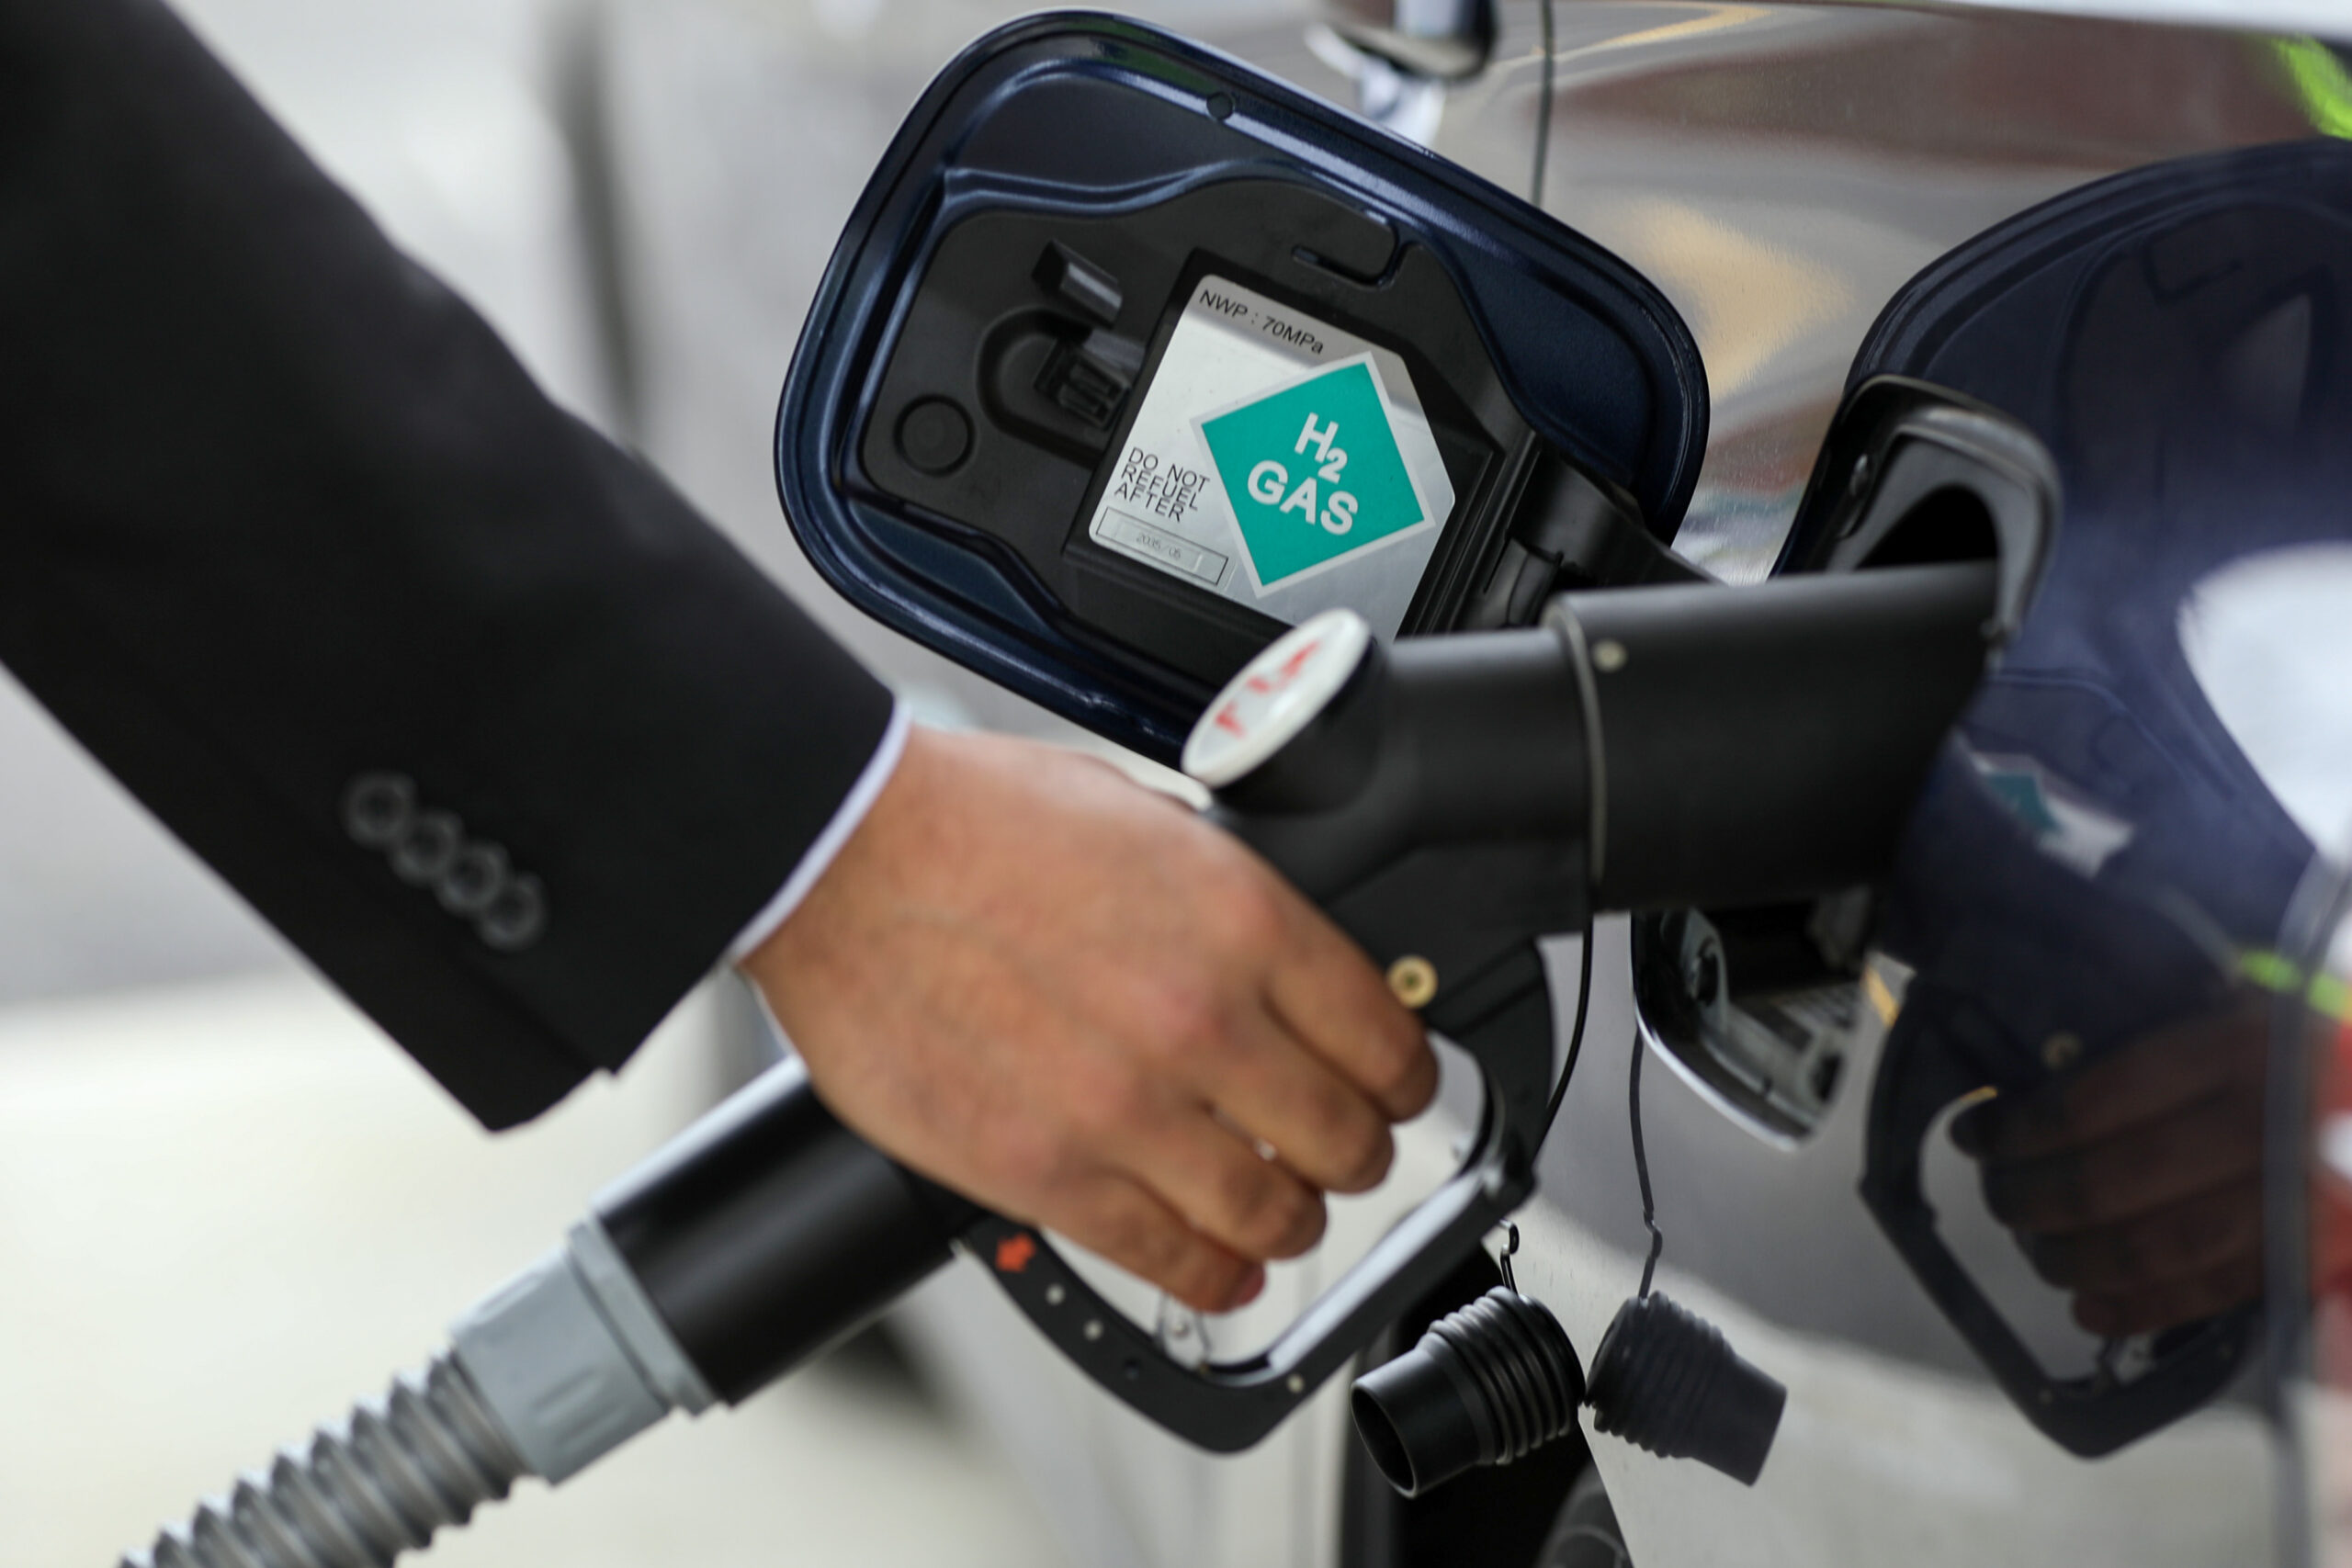 A driver places a hydrogen fuel pump into a Mirai hydrogen fuel powered automobile, manufactured by Toyota Motor Corp., at Royal Dutch Shell Plc's first U.K. hydrogen refueling station in Cobham, U.K., on Wednesday, Feb. 22, 2017. Credit: Chris Ratcliffe/Bloomberg via Getty Images